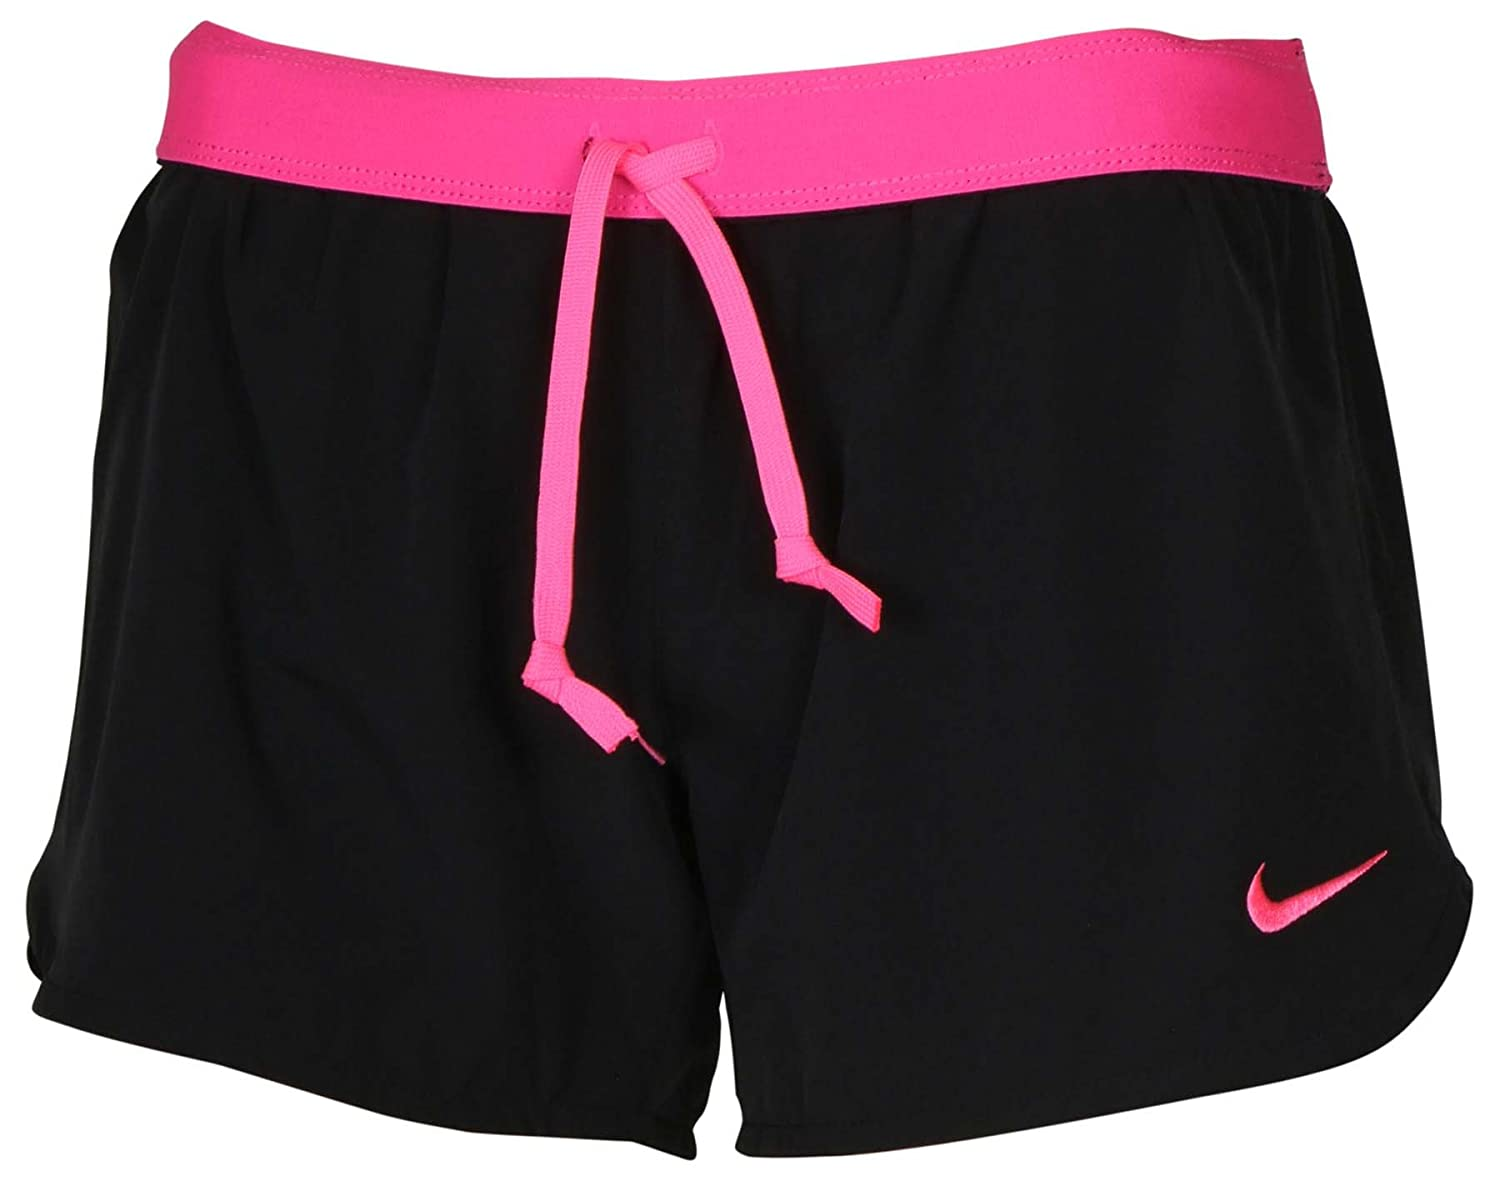 NIKE Women's Dri-Fit Phantom 2-in-1 Training Shorts